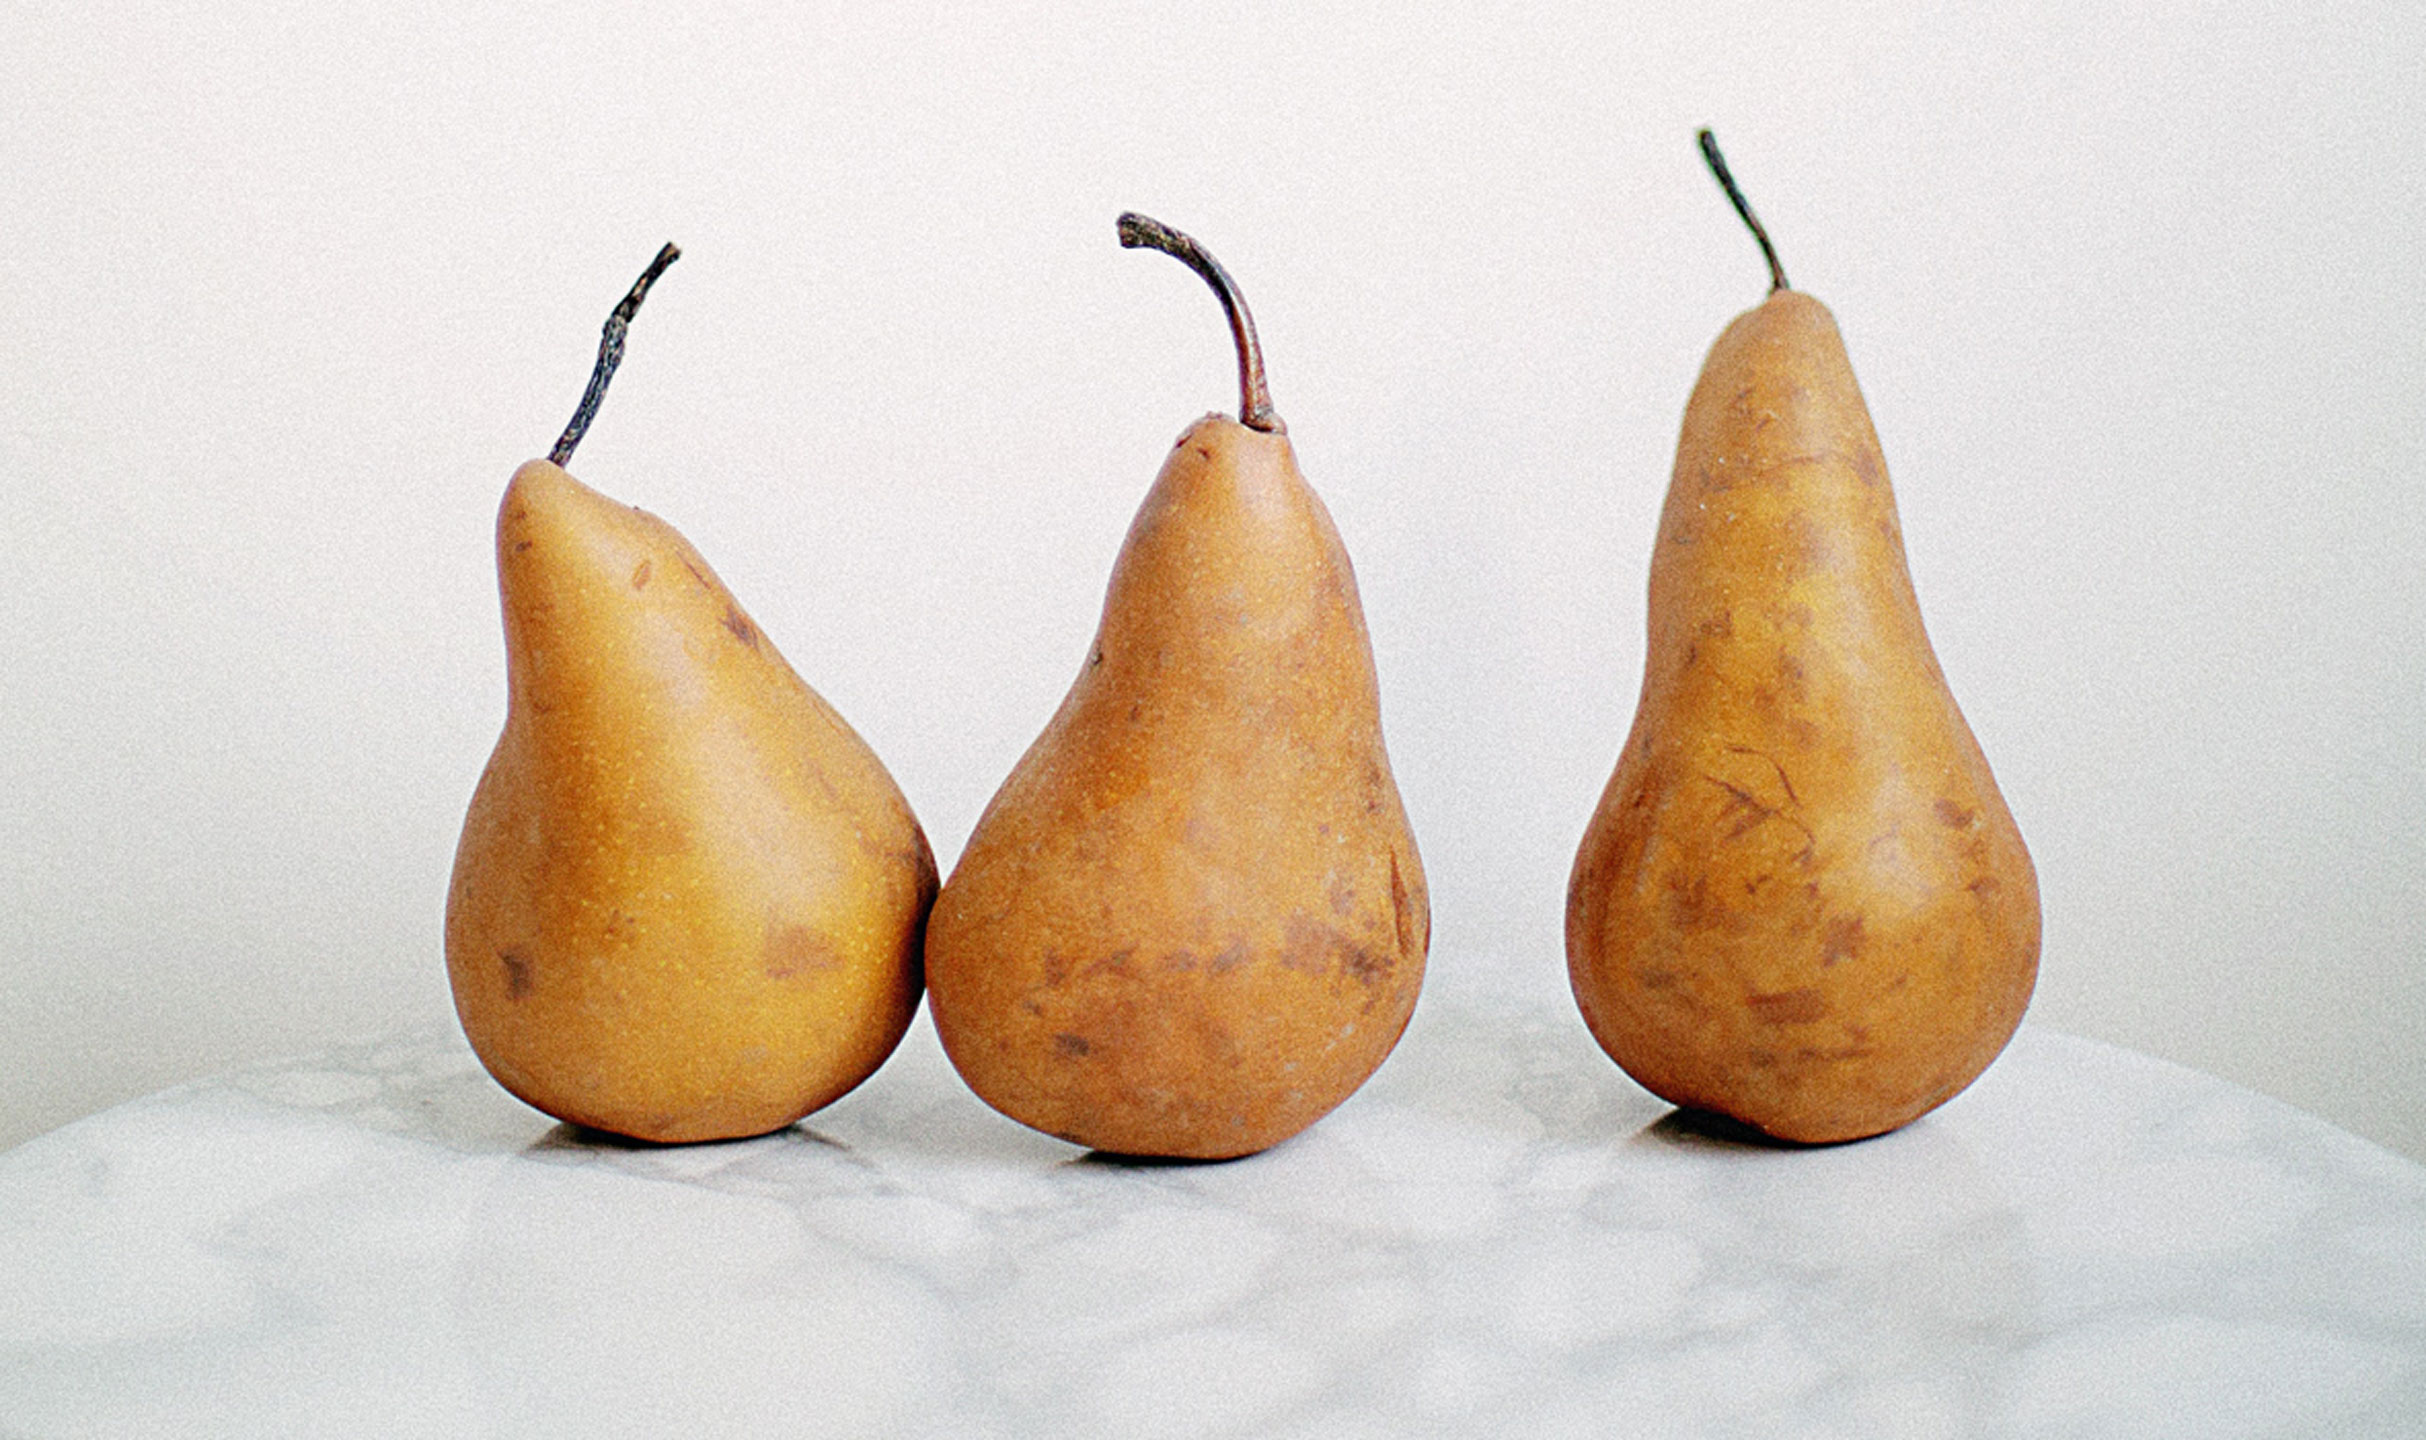 close-up-pears-fresh-1440